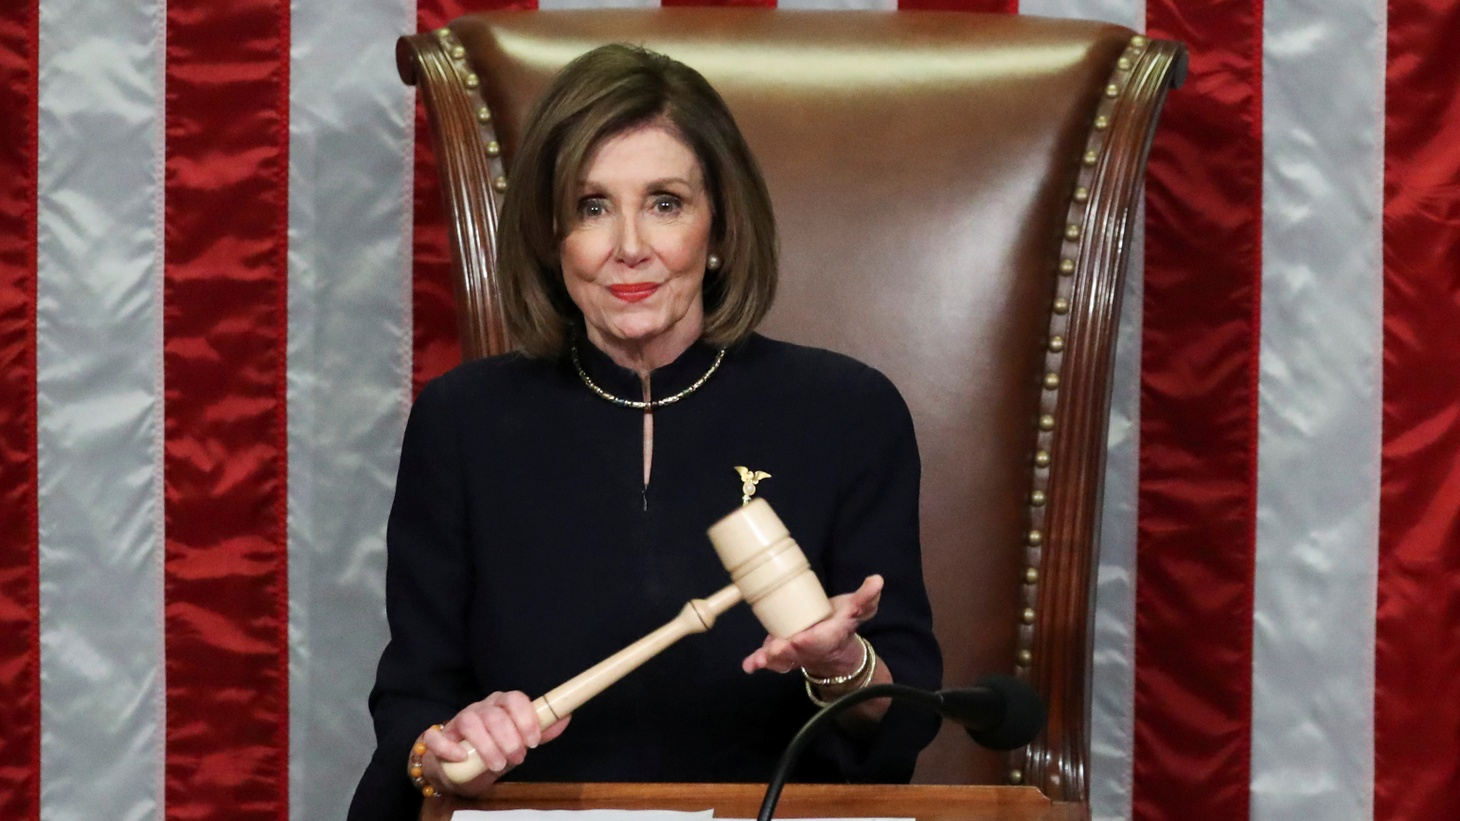 U.S. Speaker of the House Nancy Pelosi (D-CA) wields the Speaker's gavel as she presides over the final of two House of Representatives votes approving two counts of impeachment against U.S. President Donald Trump in the House Chamber of the U.S. Capitol in Washington, U.S., December 18, 2019.